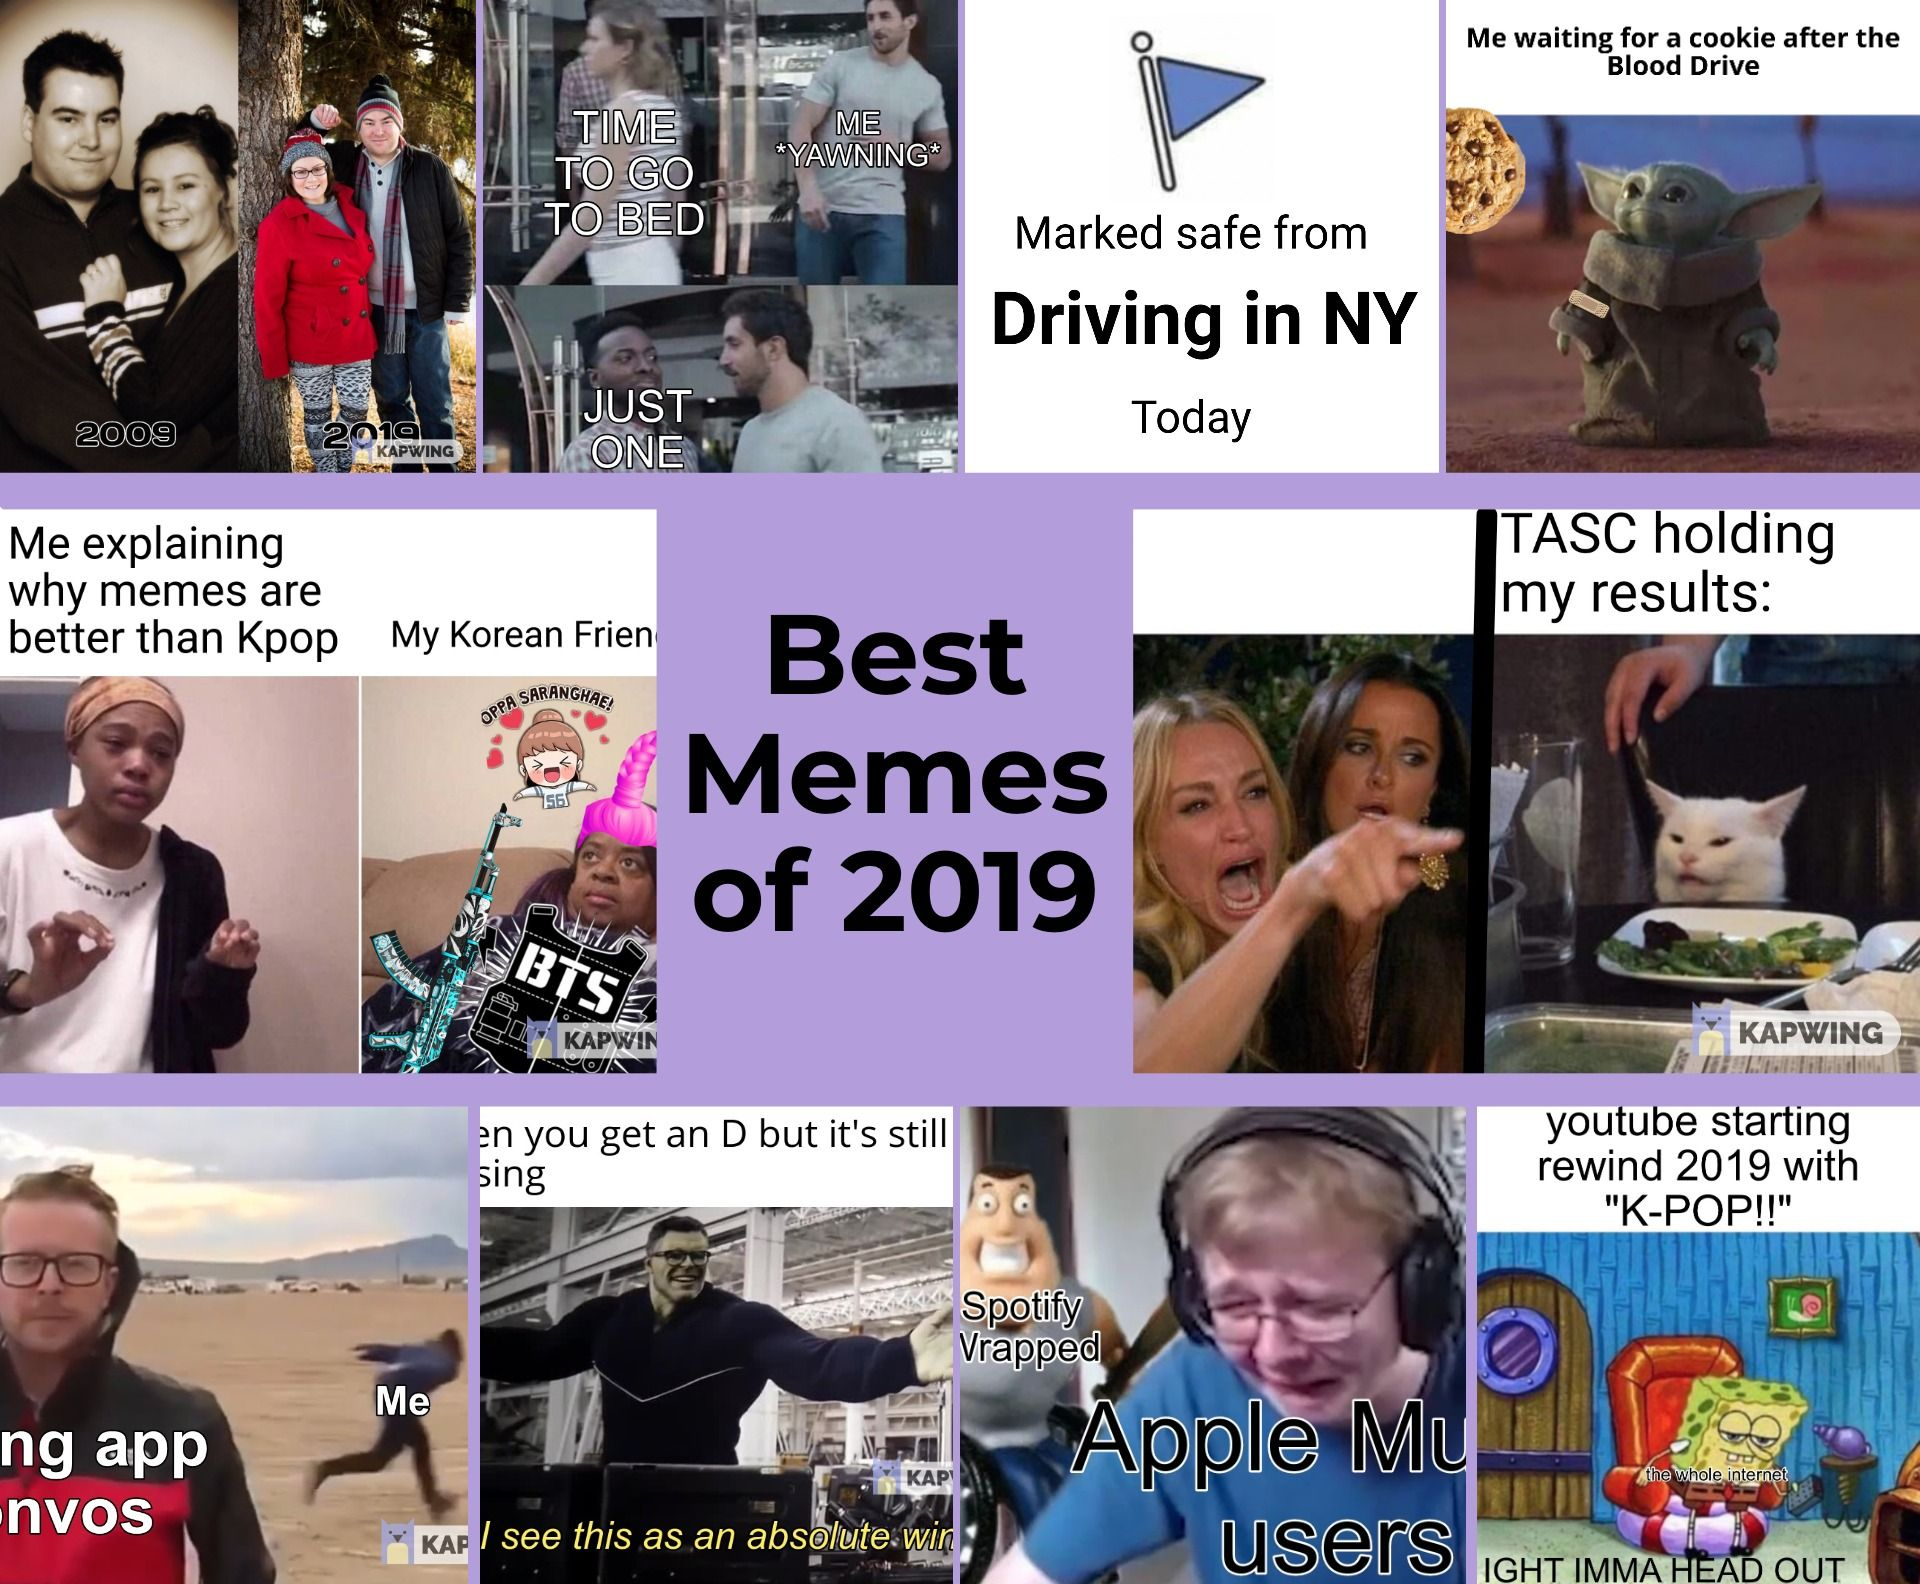 Best Memes Of 2019 According To Kapwing